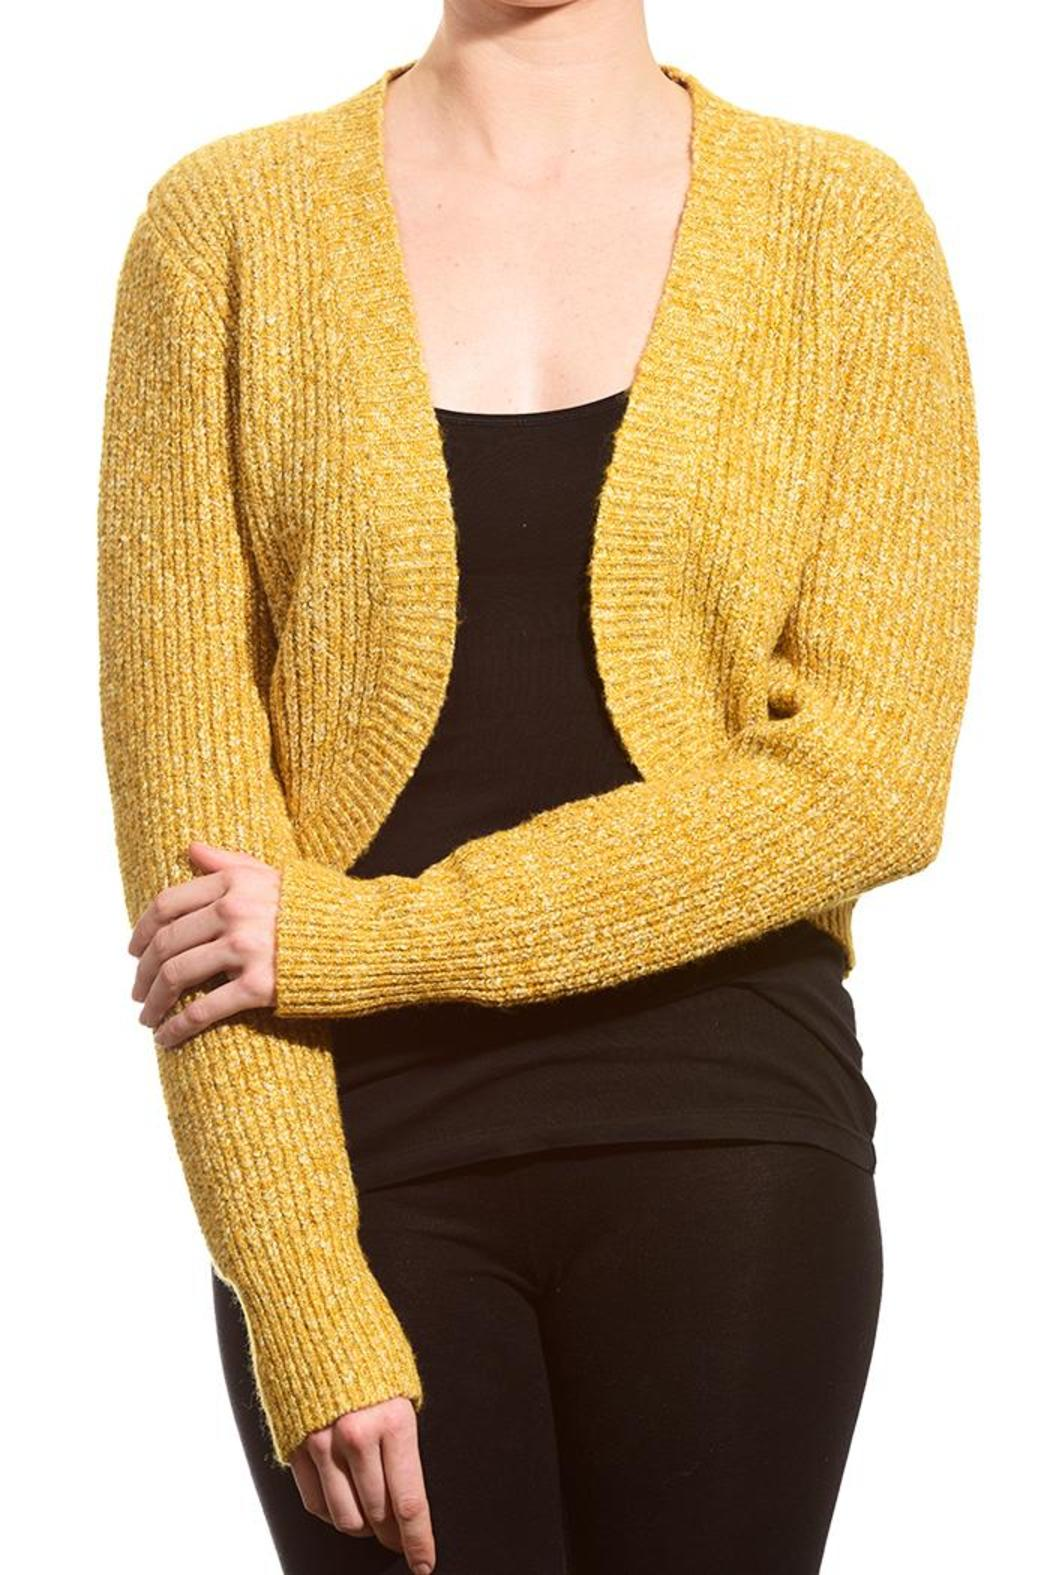 Inspired Style/Spanner Knit Bolero Cardigan from Canada by Petite ...